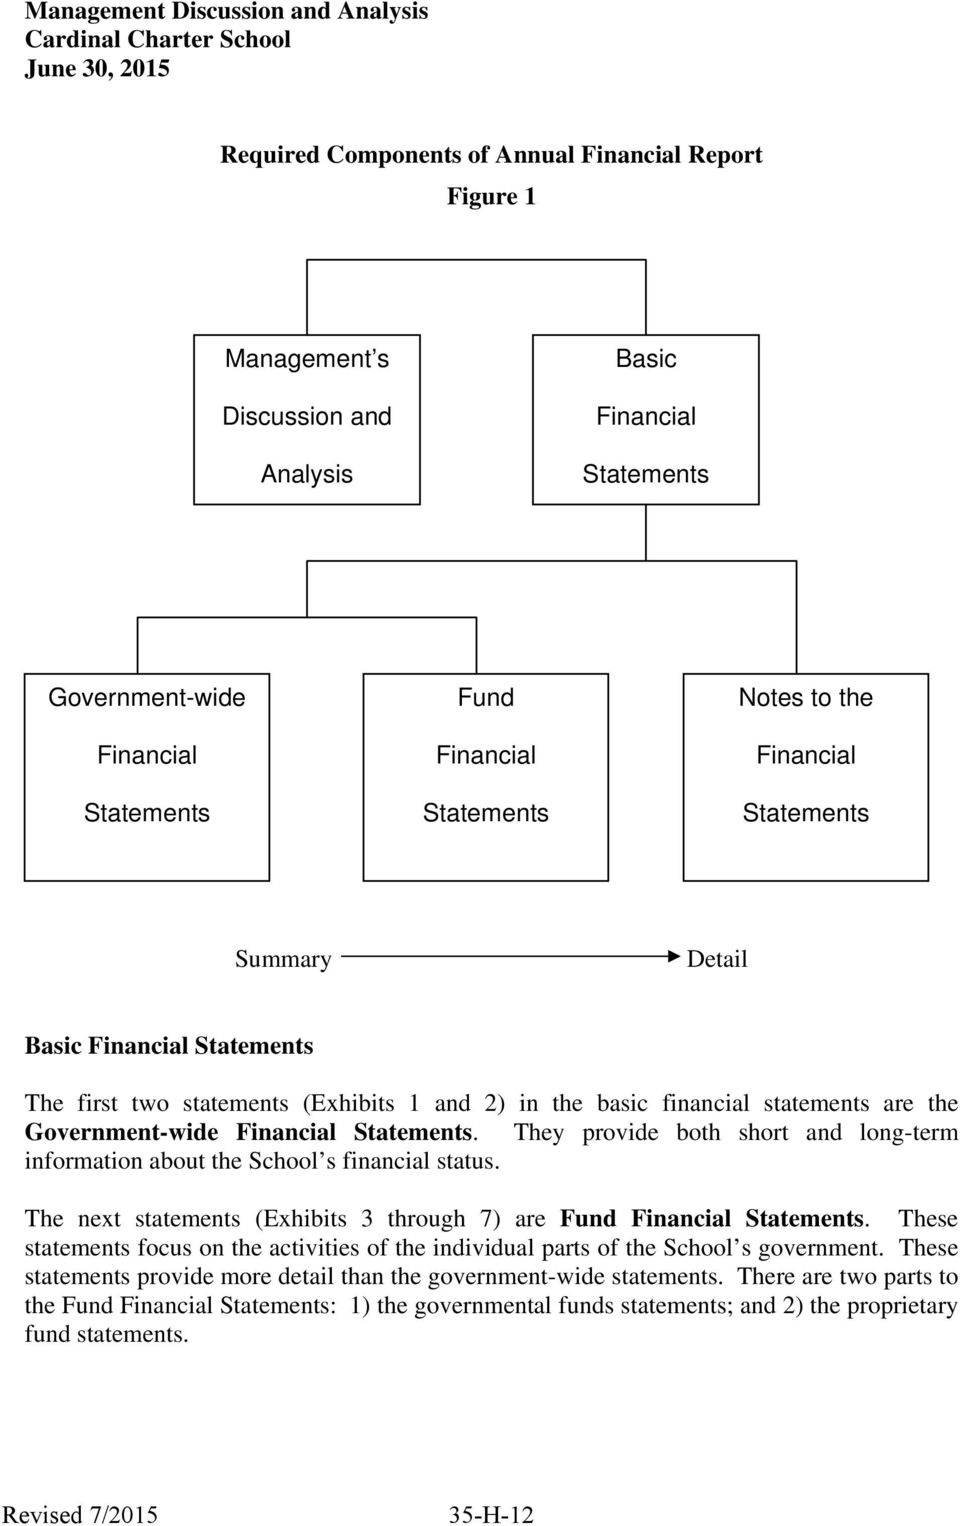 financial statements are the Government-wide Financial Statements. They provide both short and long-term information about the School s financial status.